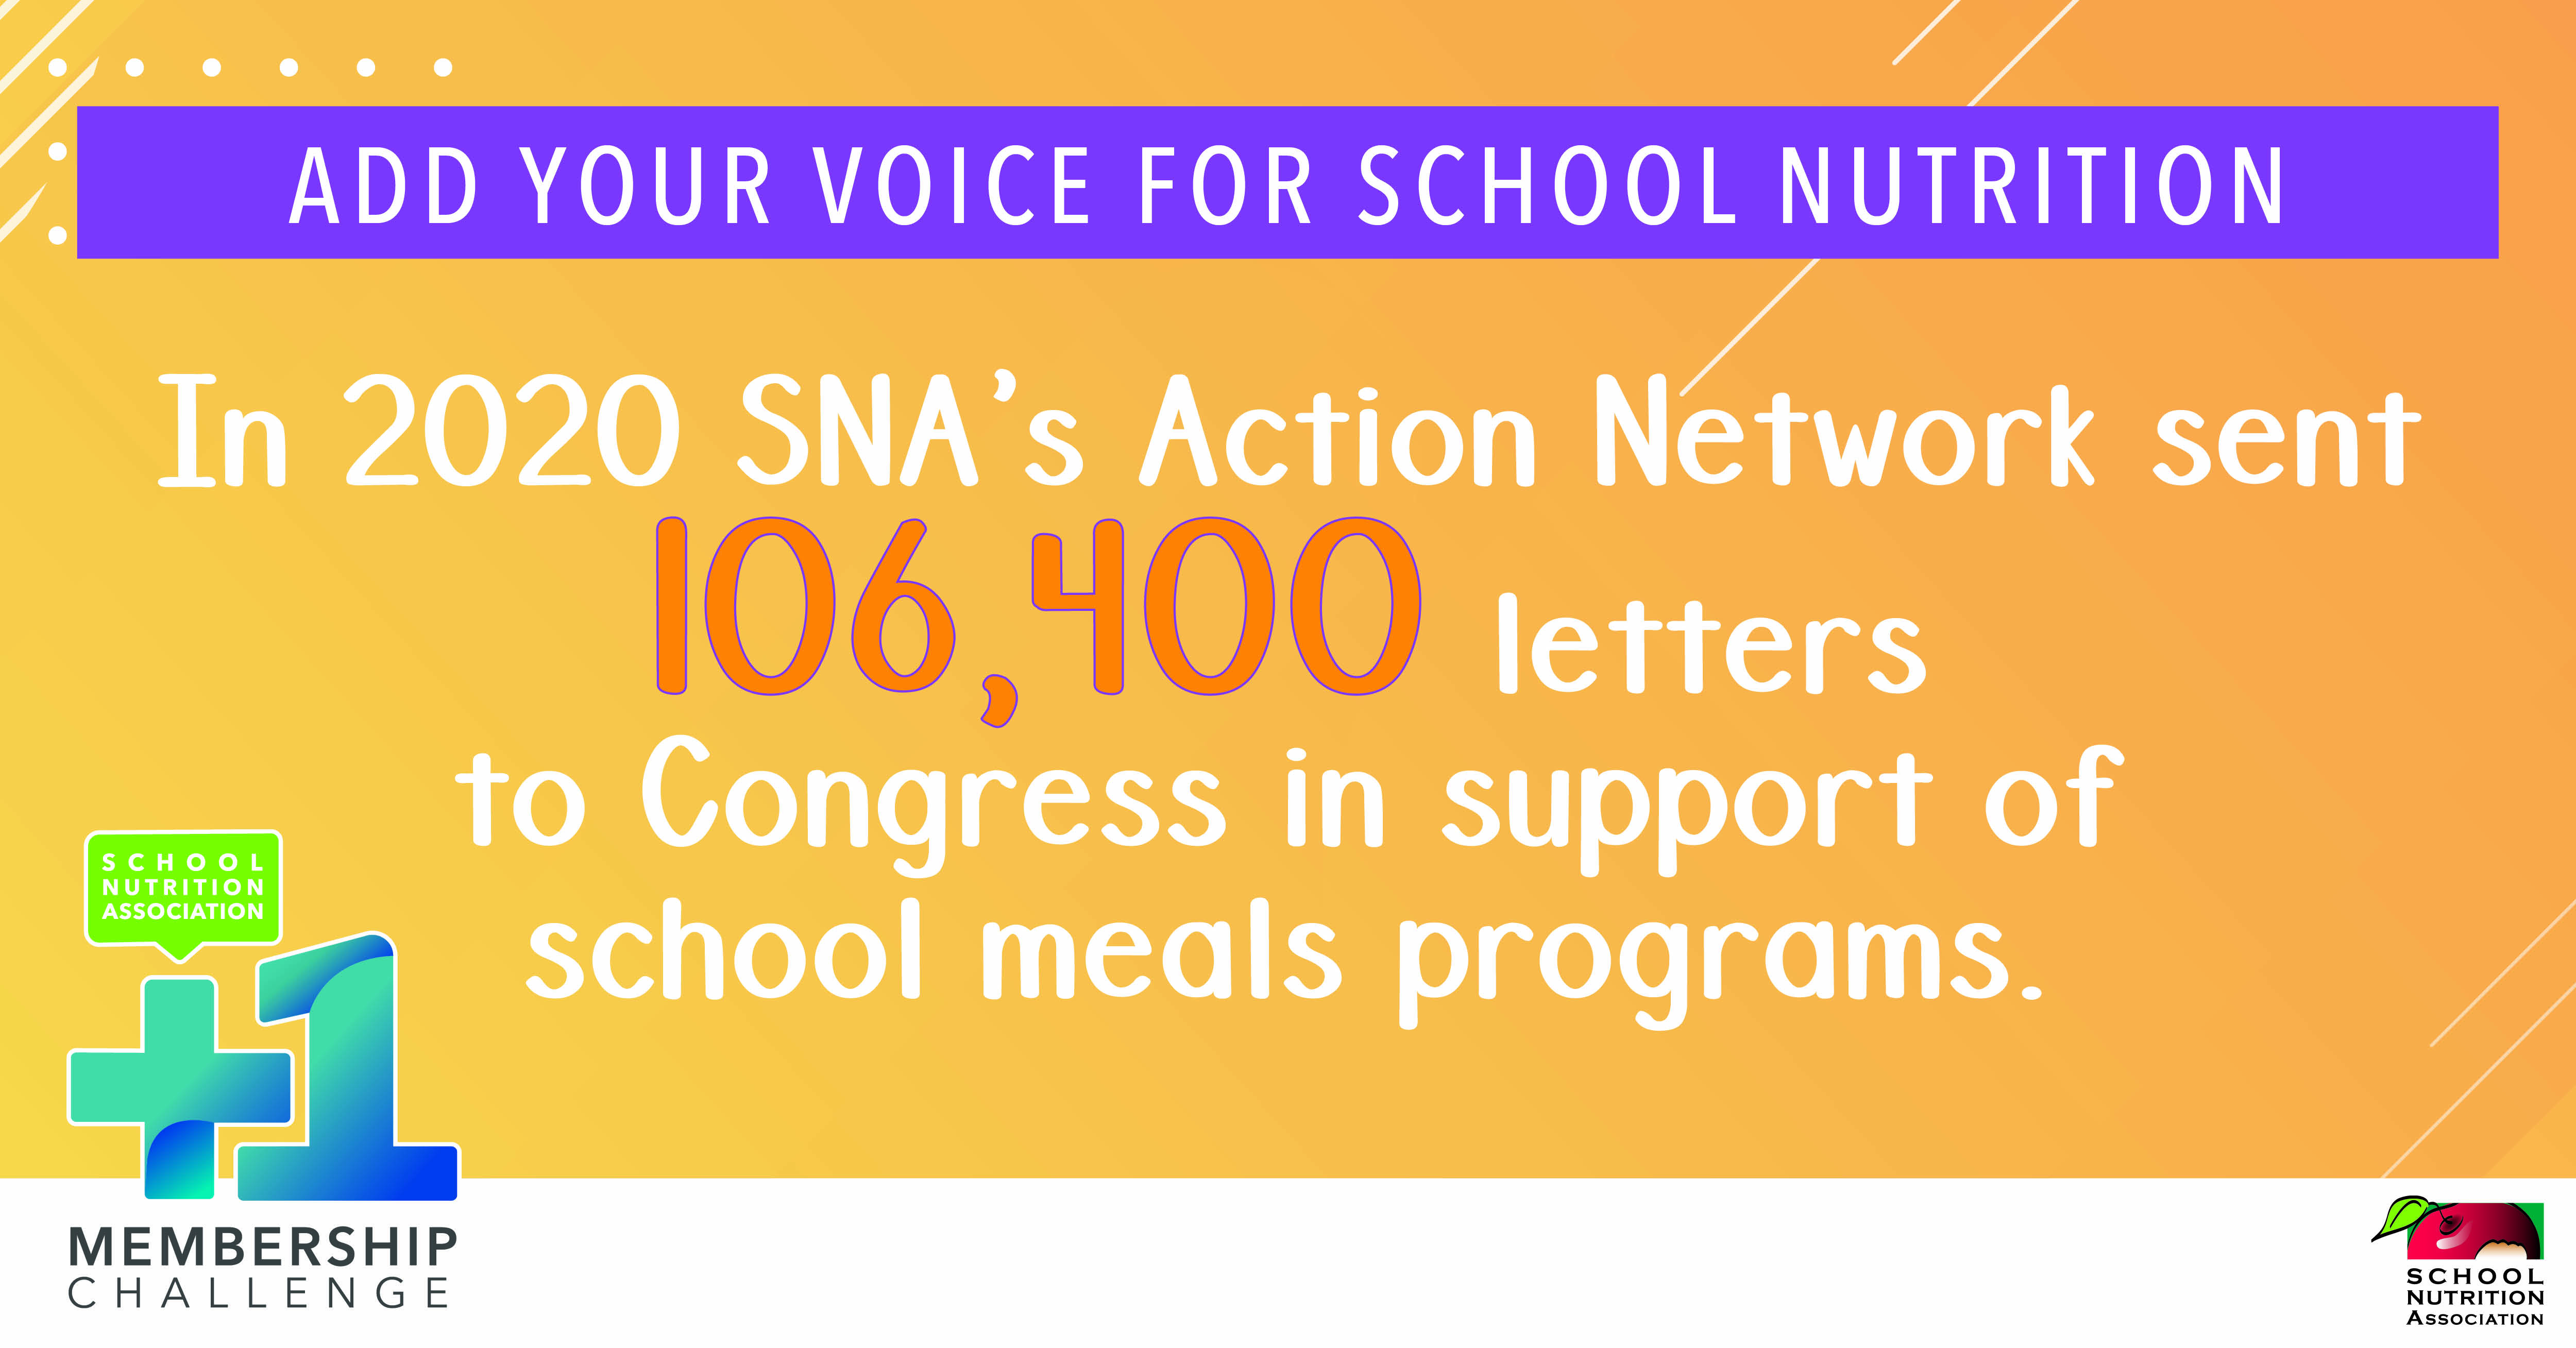 Add-Your-Voice-for-School-Nutrition-Facebook